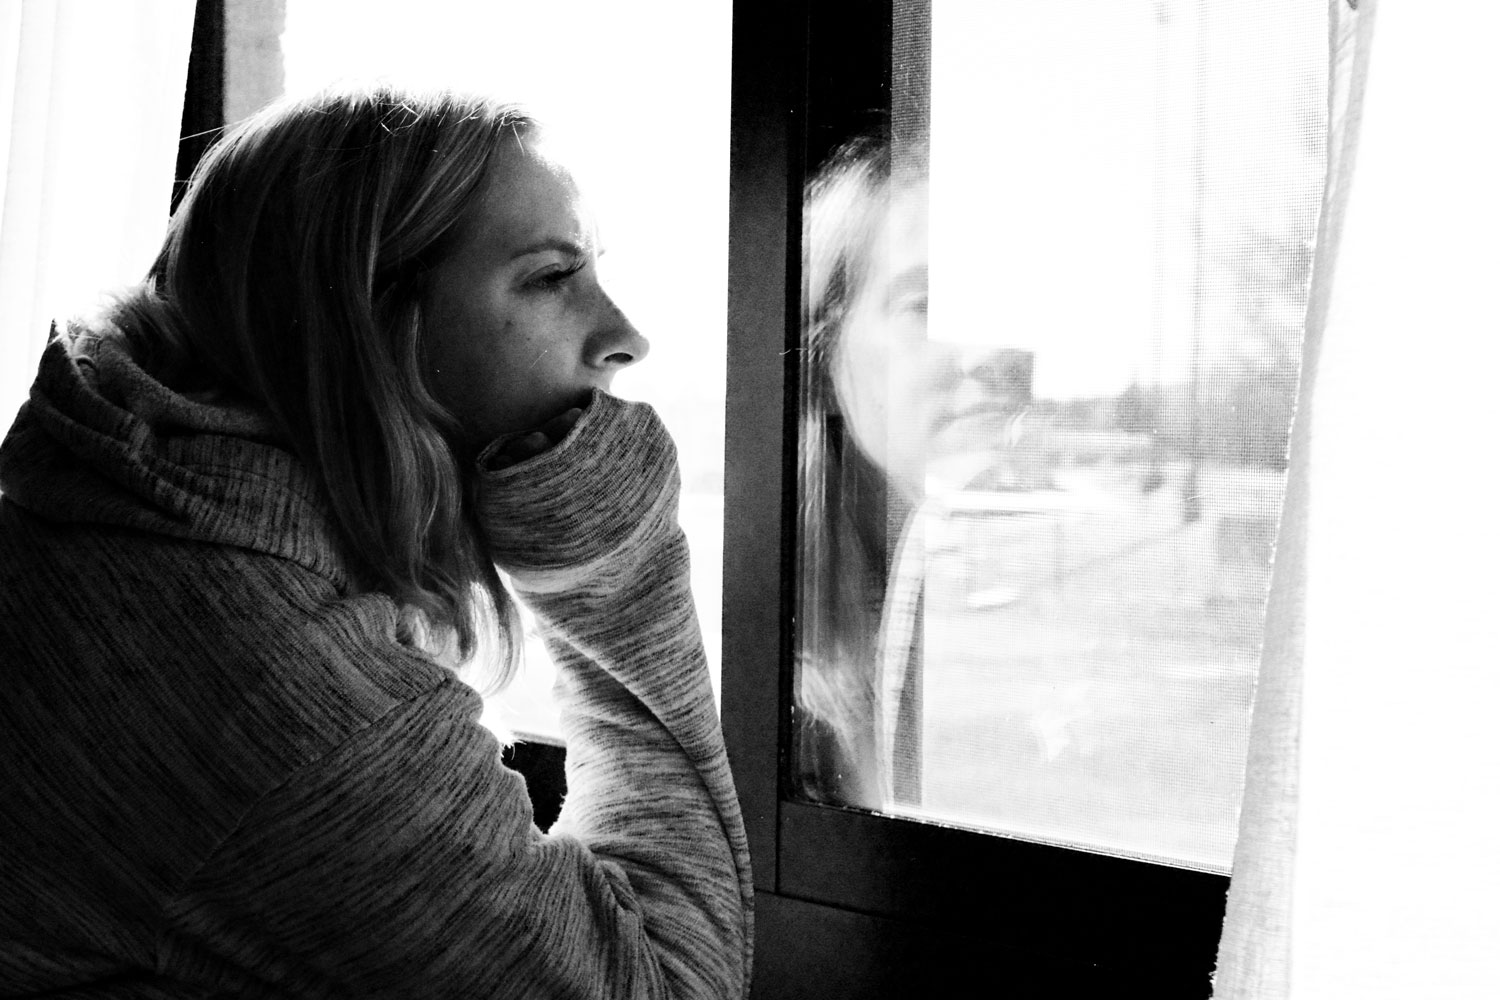 Suicide is the third leading cause of death in young adults ages 18-24. Sadly, not enough people speak up and seek help.